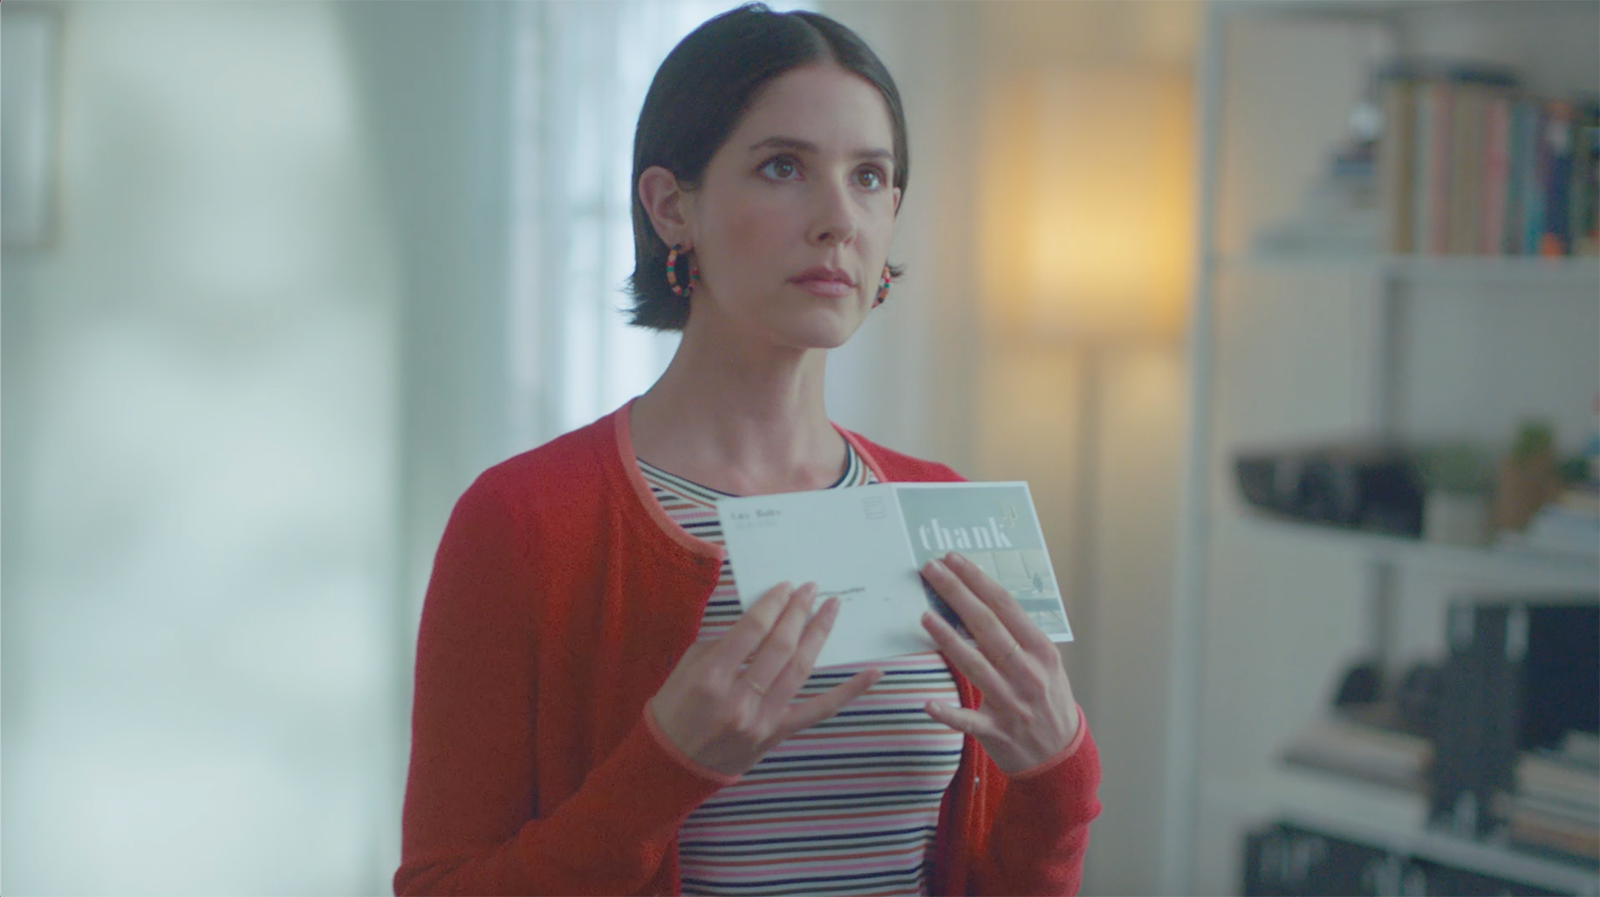 A woman reacting to a business's thank you card.